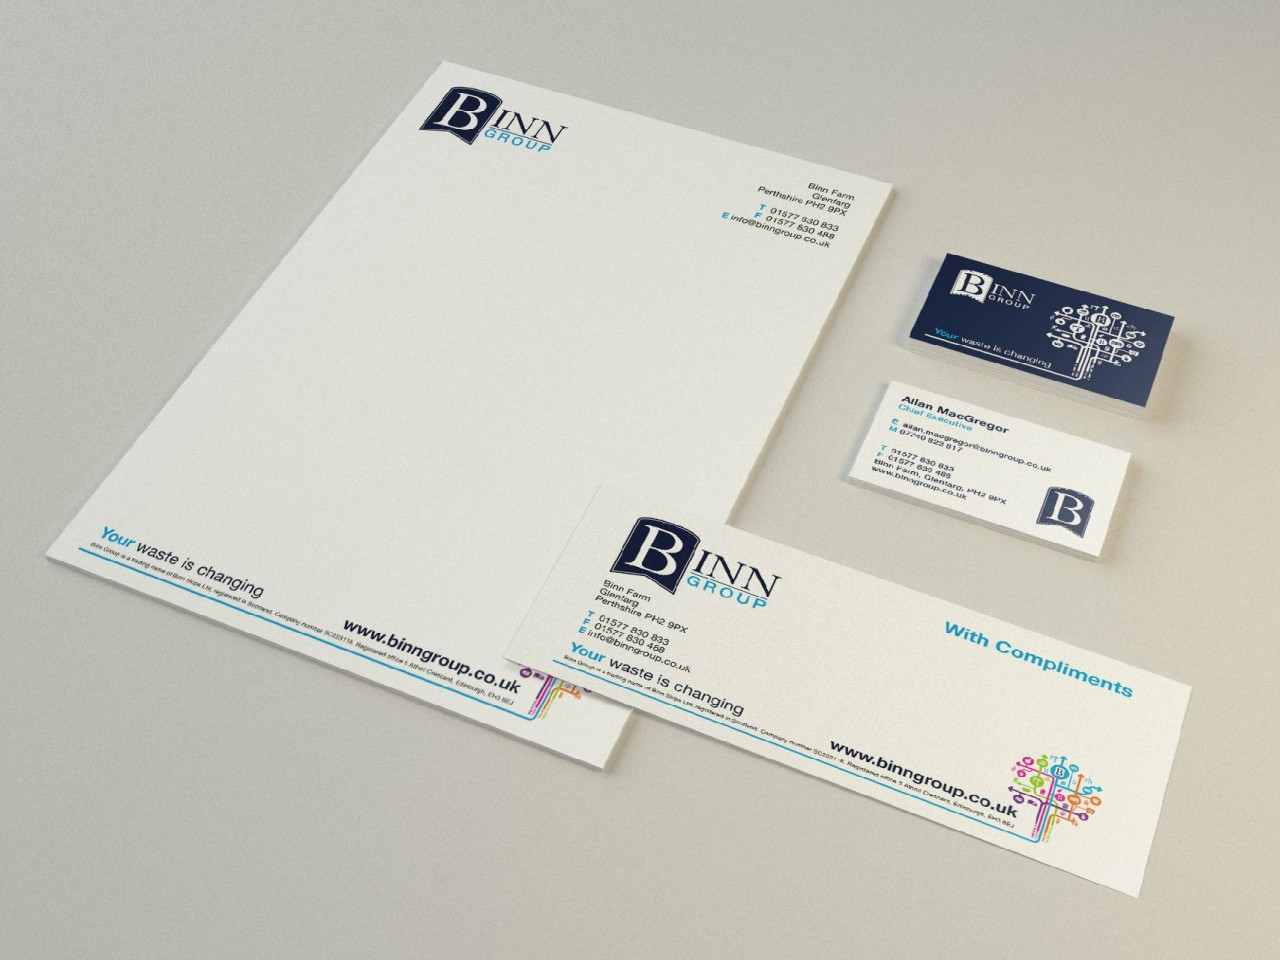 Home winter and simpson print delivering high quality binn group stationery set showing branded letterhead business cards and compliment slip reheart Image collections